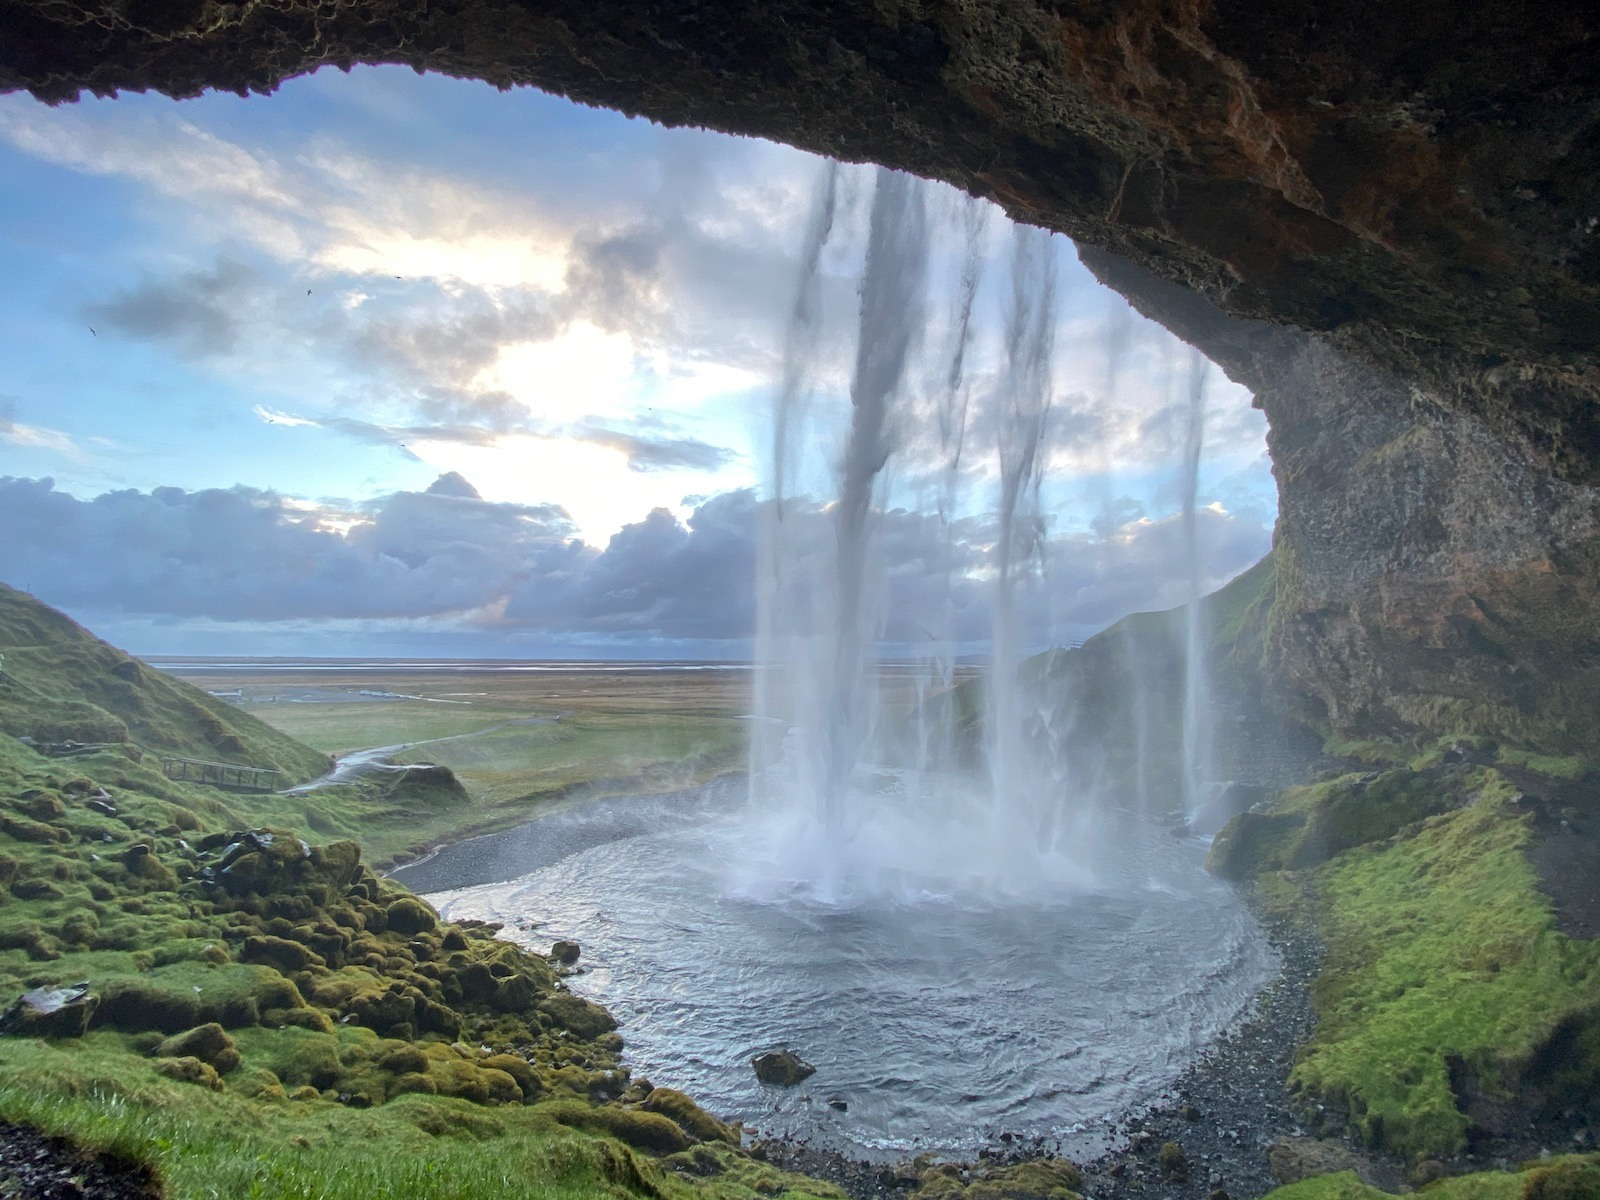 Water fall and scenic view in Iceland.